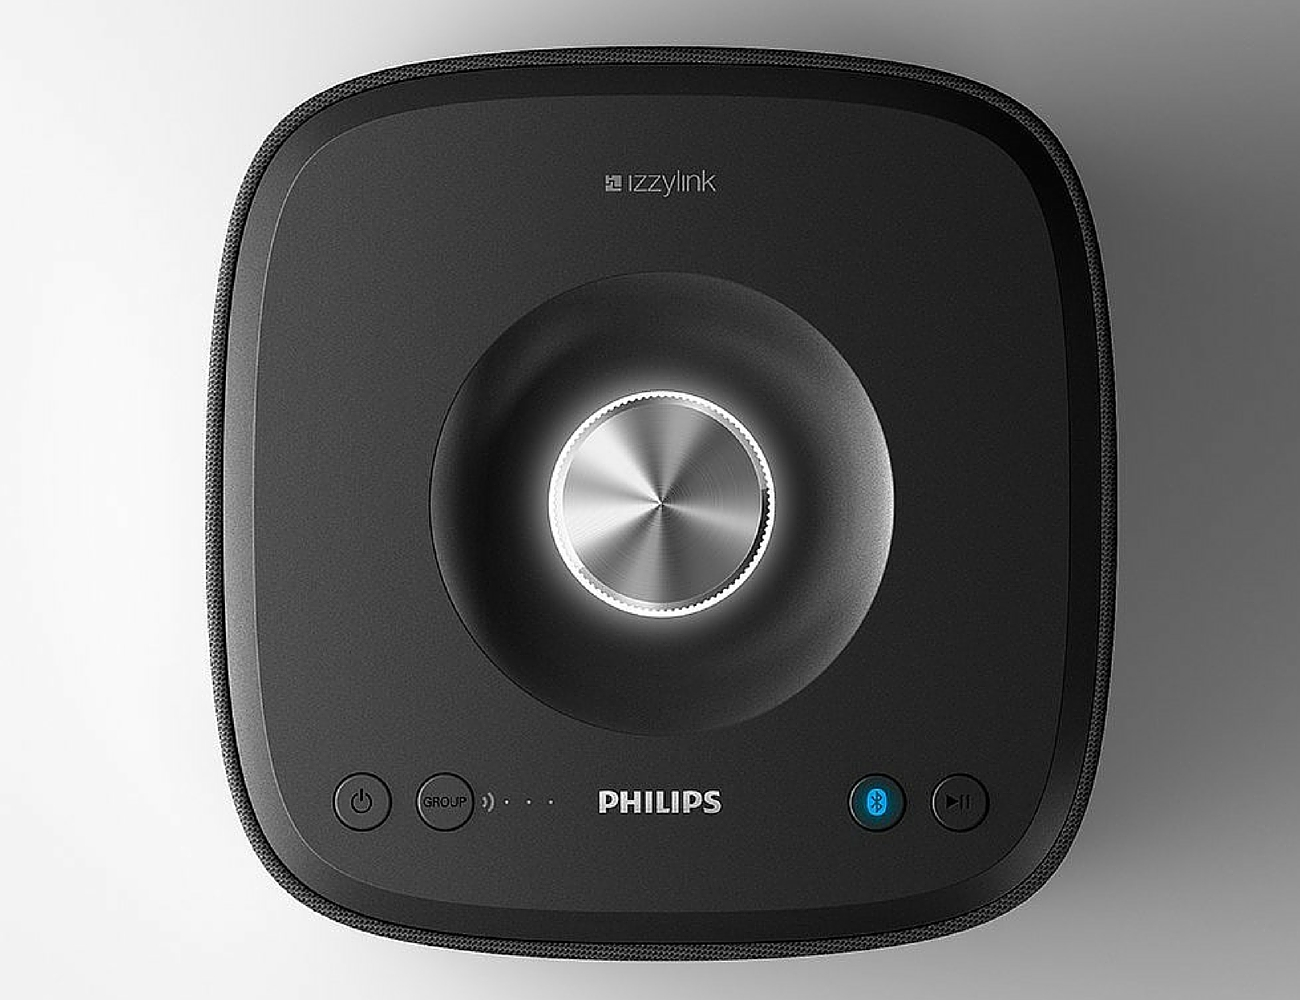 philips izzy multi room audio system gadget flow. Black Bedroom Furniture Sets. Home Design Ideas